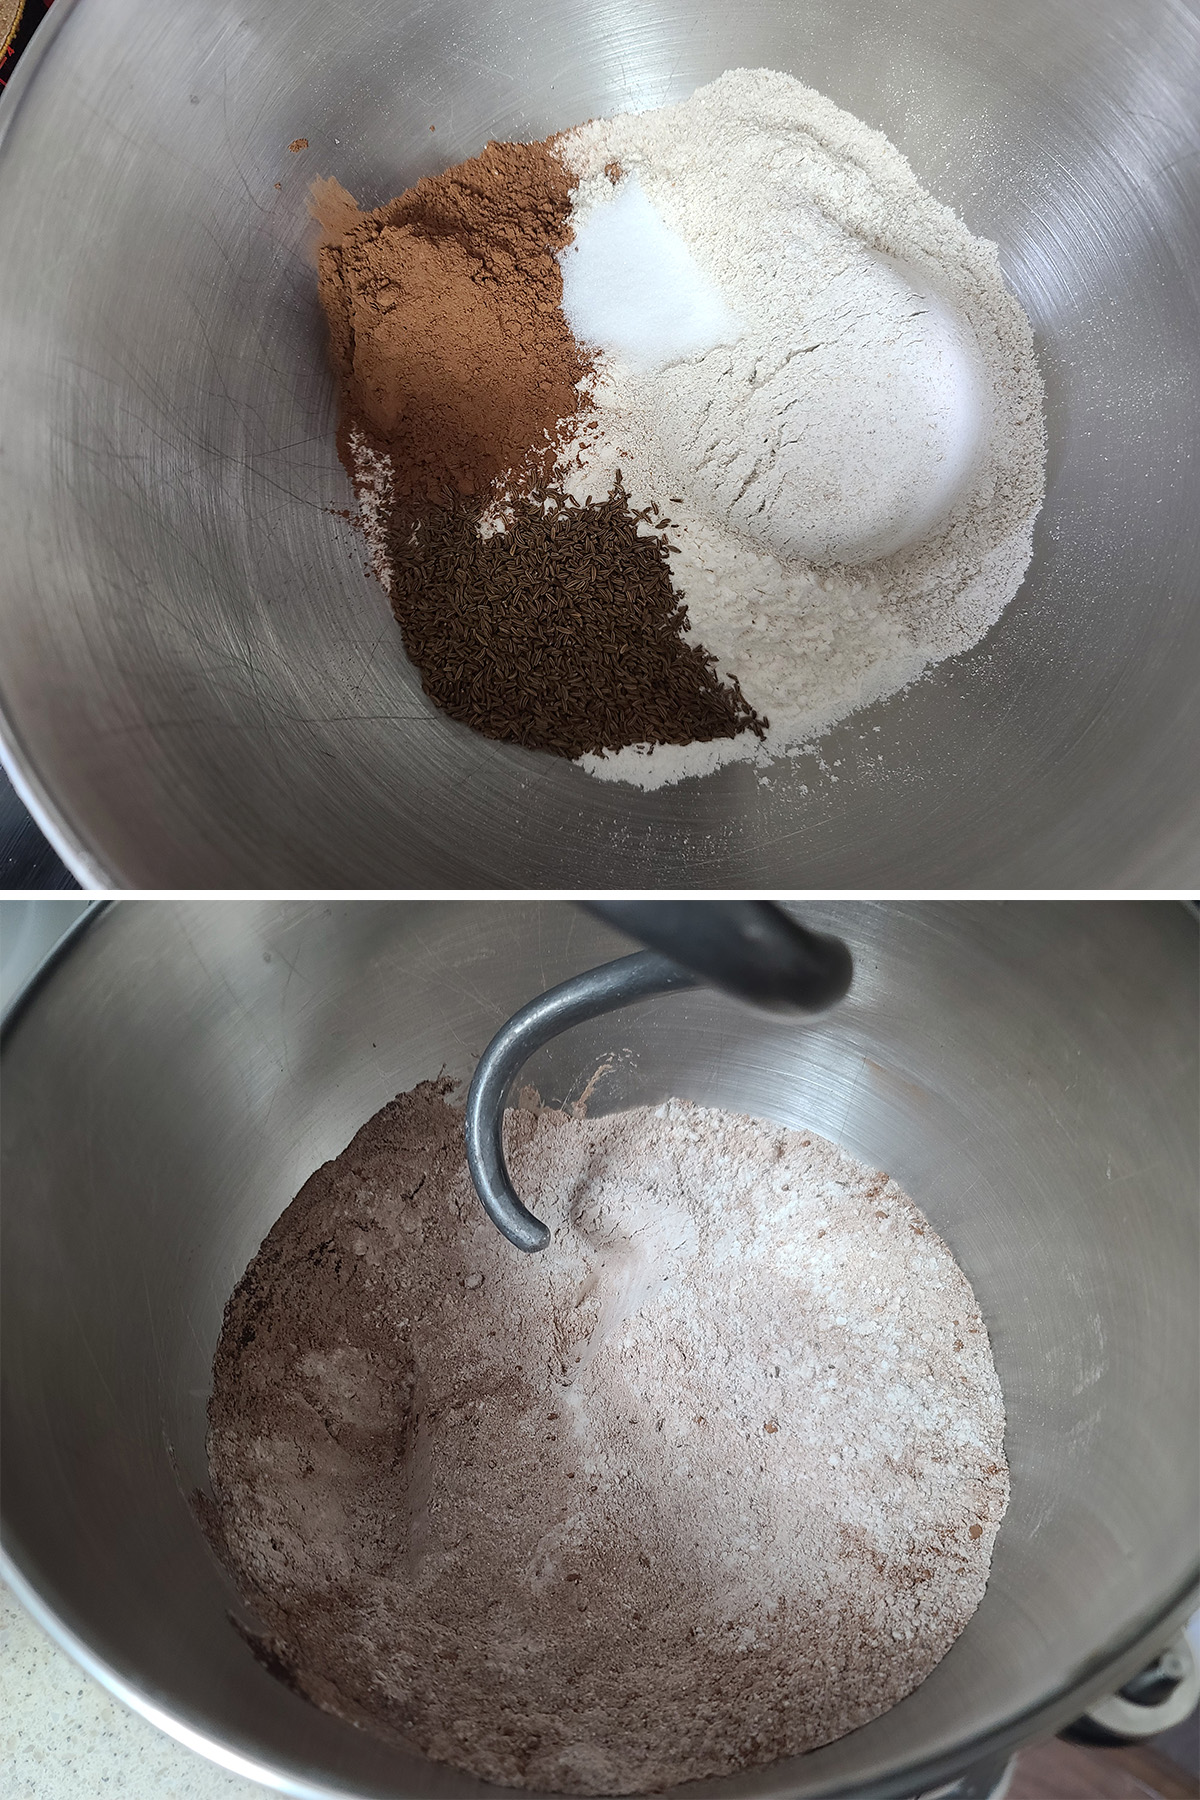 A two part image showing the dry ingredients measured into a bowl, then after they're mixed together.